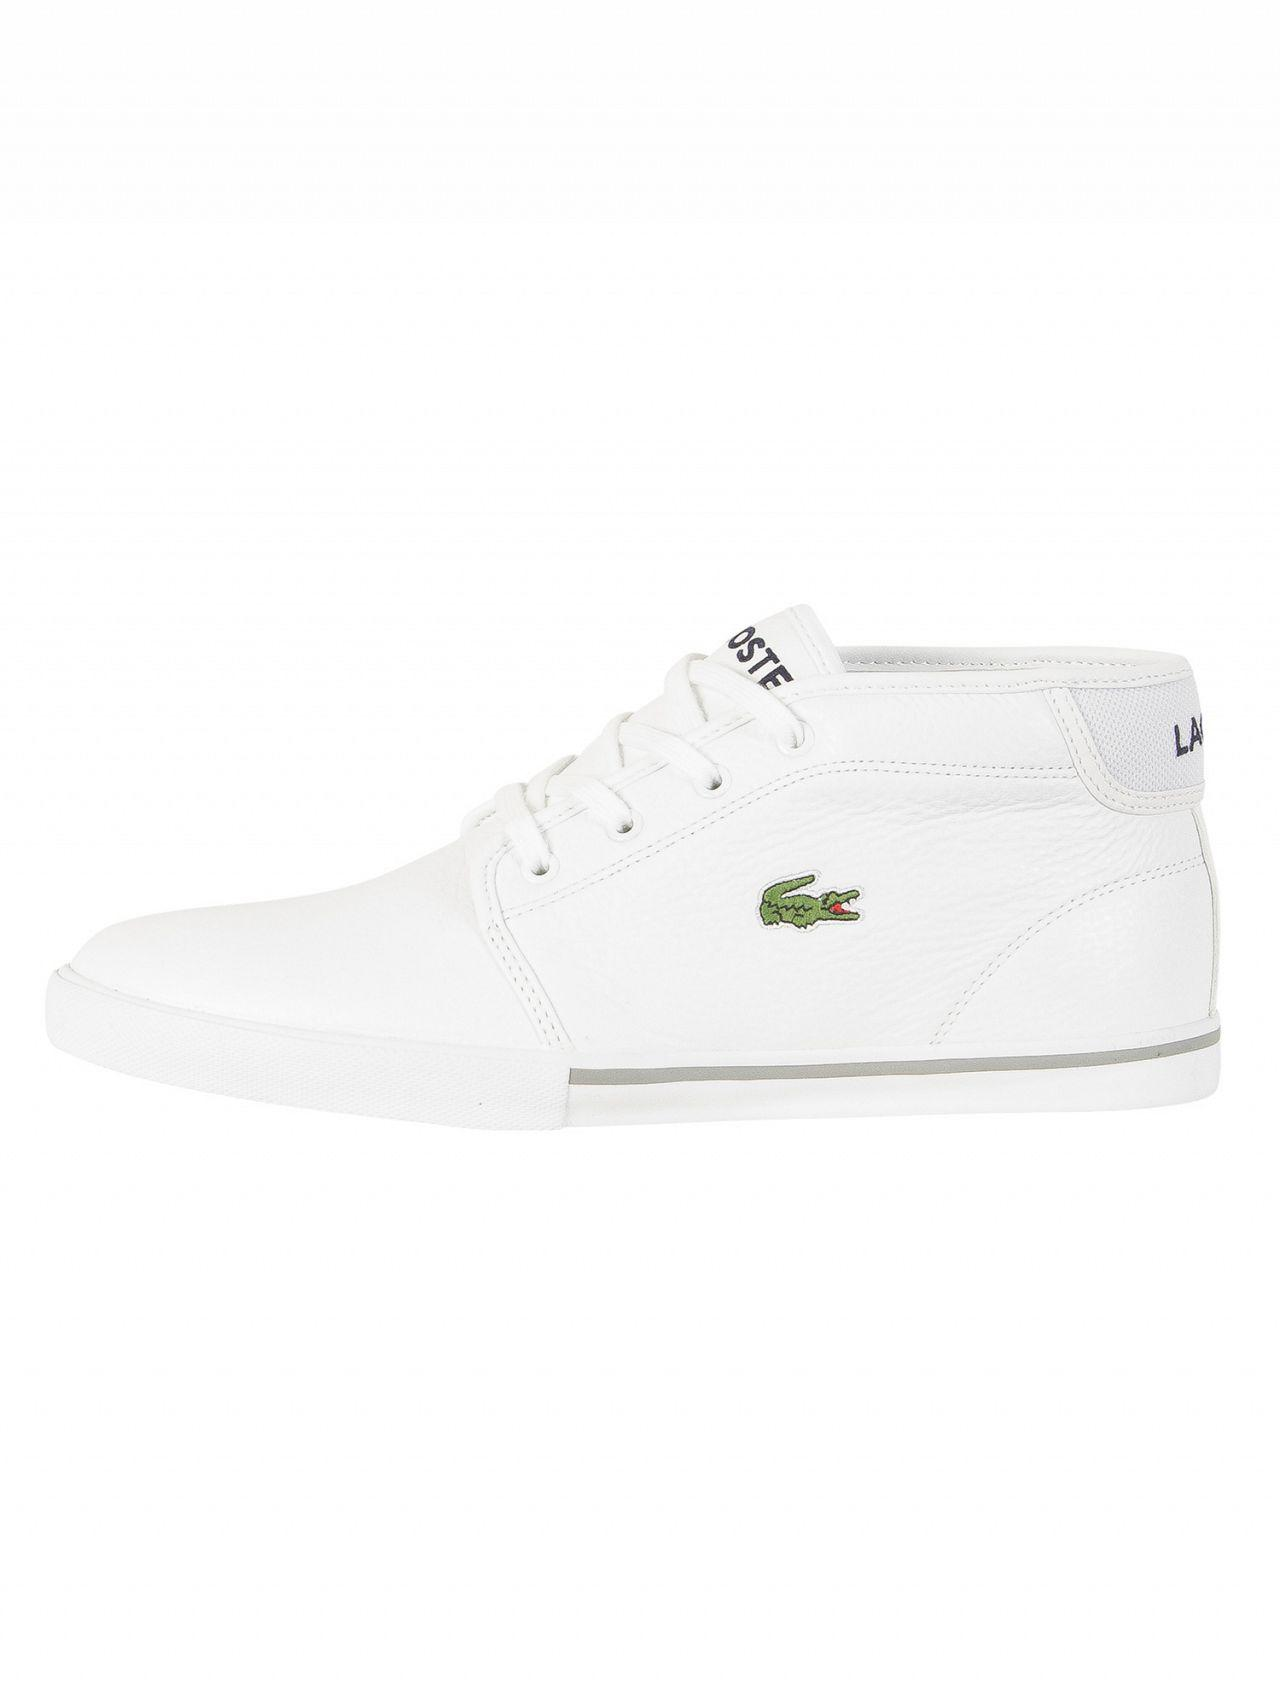 e17ce0881f3cde Lyst - Lacoste White white Ampthill Lcr3 Spm Trainers in White for Men